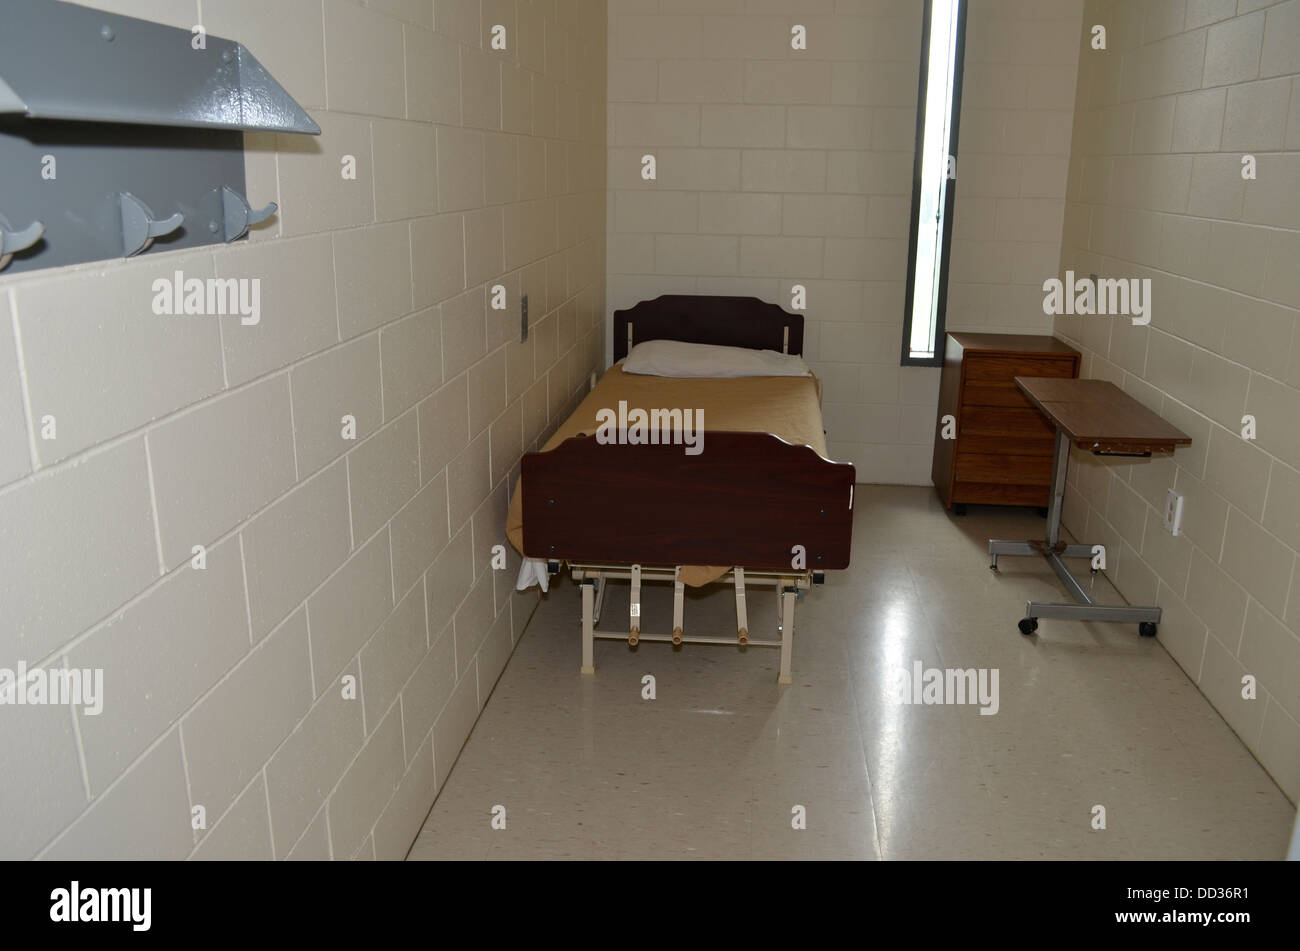 Cell in the hospital/medical unit. Diagnostic & Evaluation Center, Lincoln, Nebraska. - Stock Image